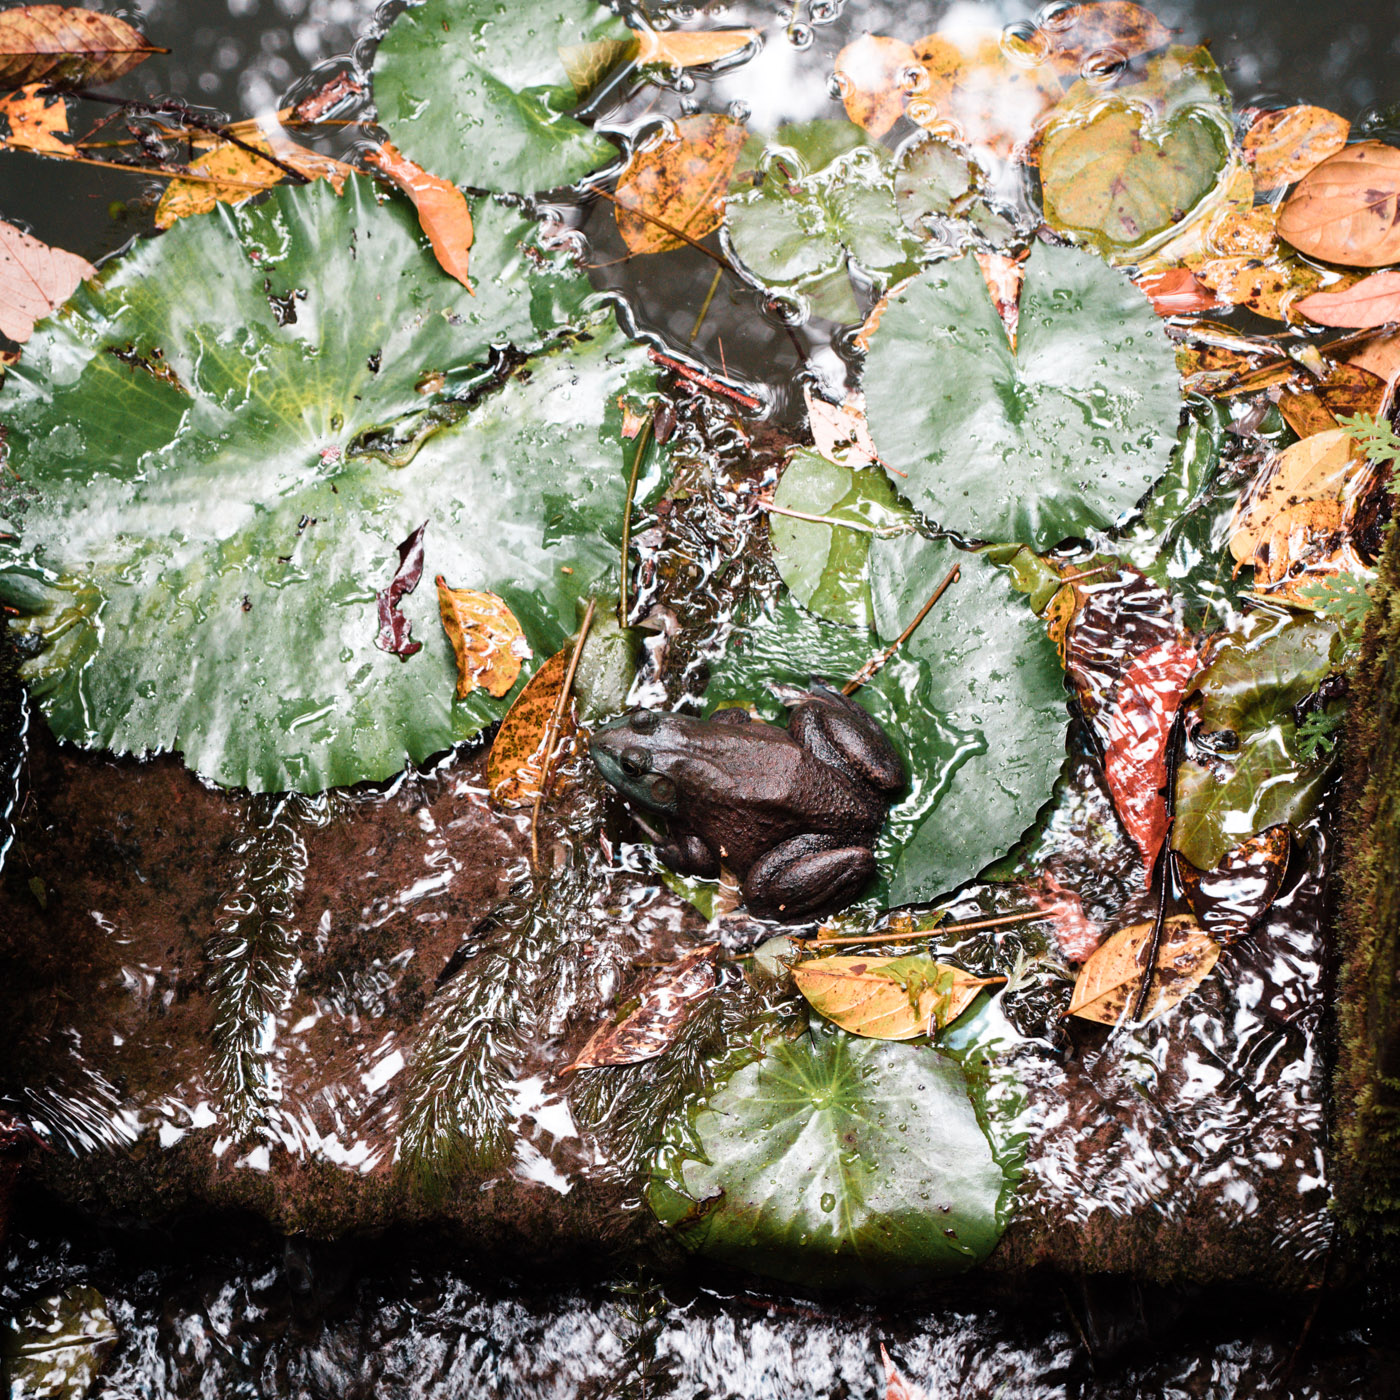 and a frog at the Lily Pond in Penang Botanical Garden.